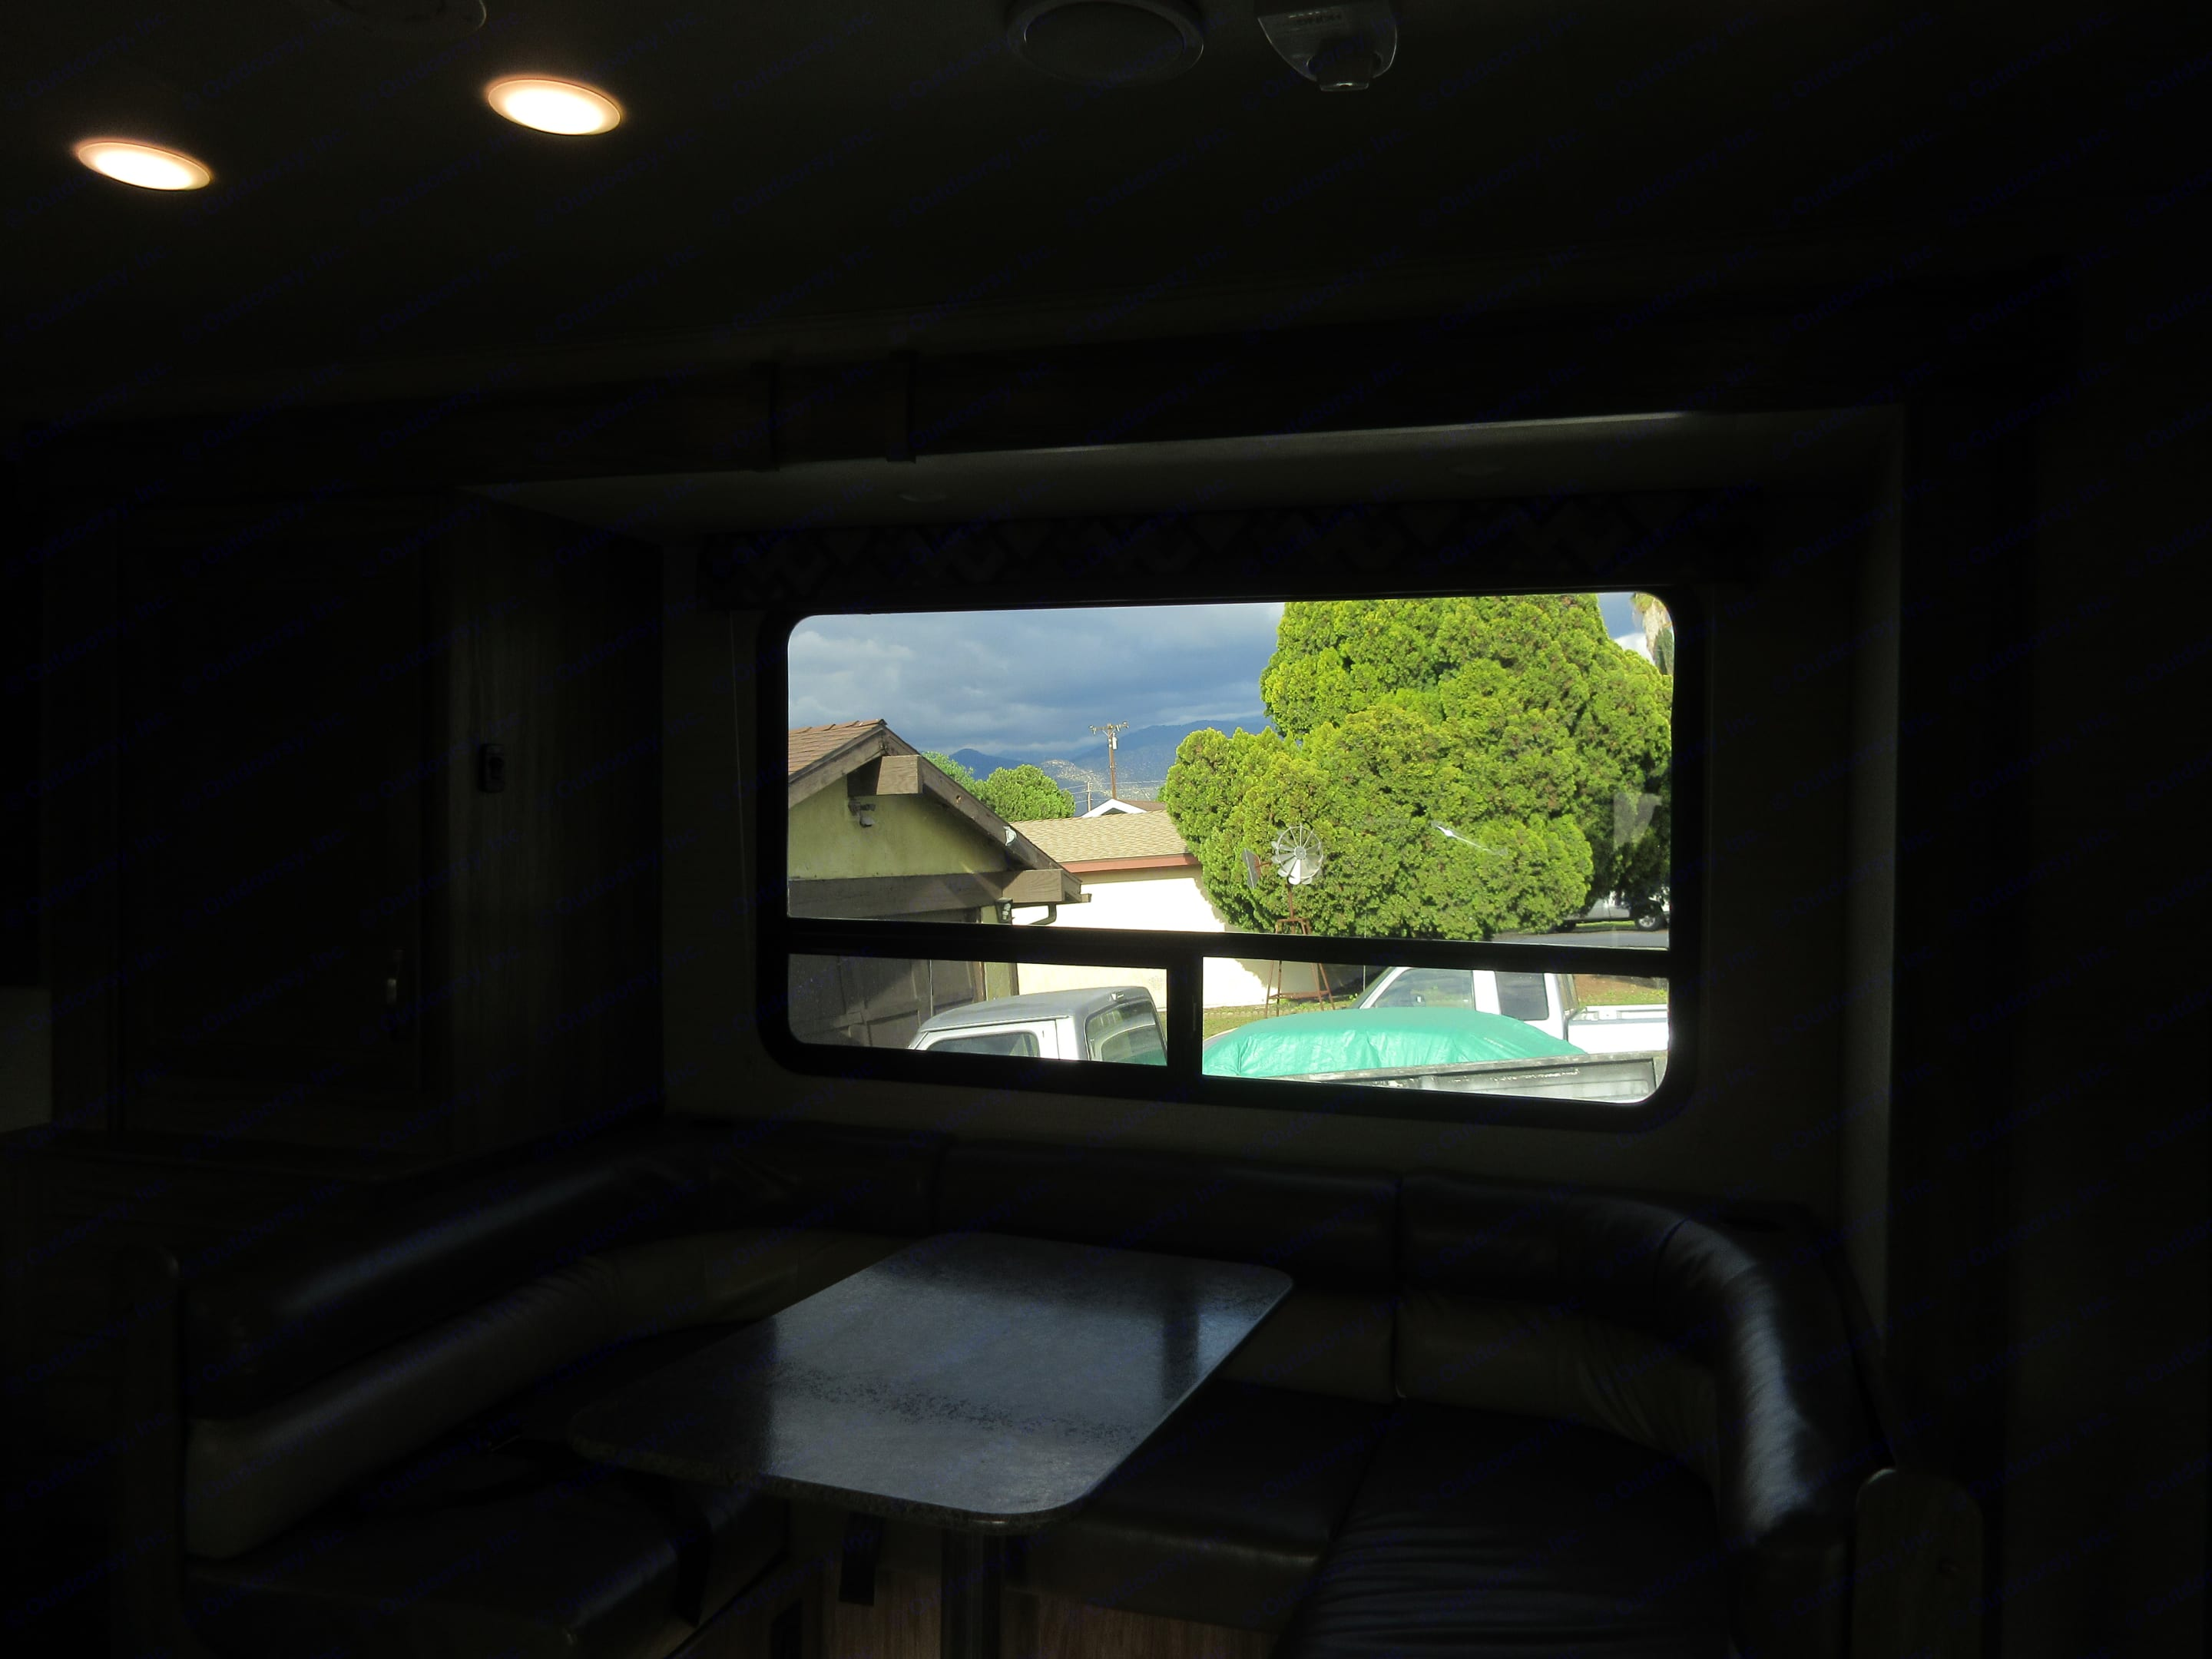 From the entrance view of the dining area of the RV.  When parked the dining area allows for more space by pressing a button to expand this space outward.. Jayco Redhawk 2018